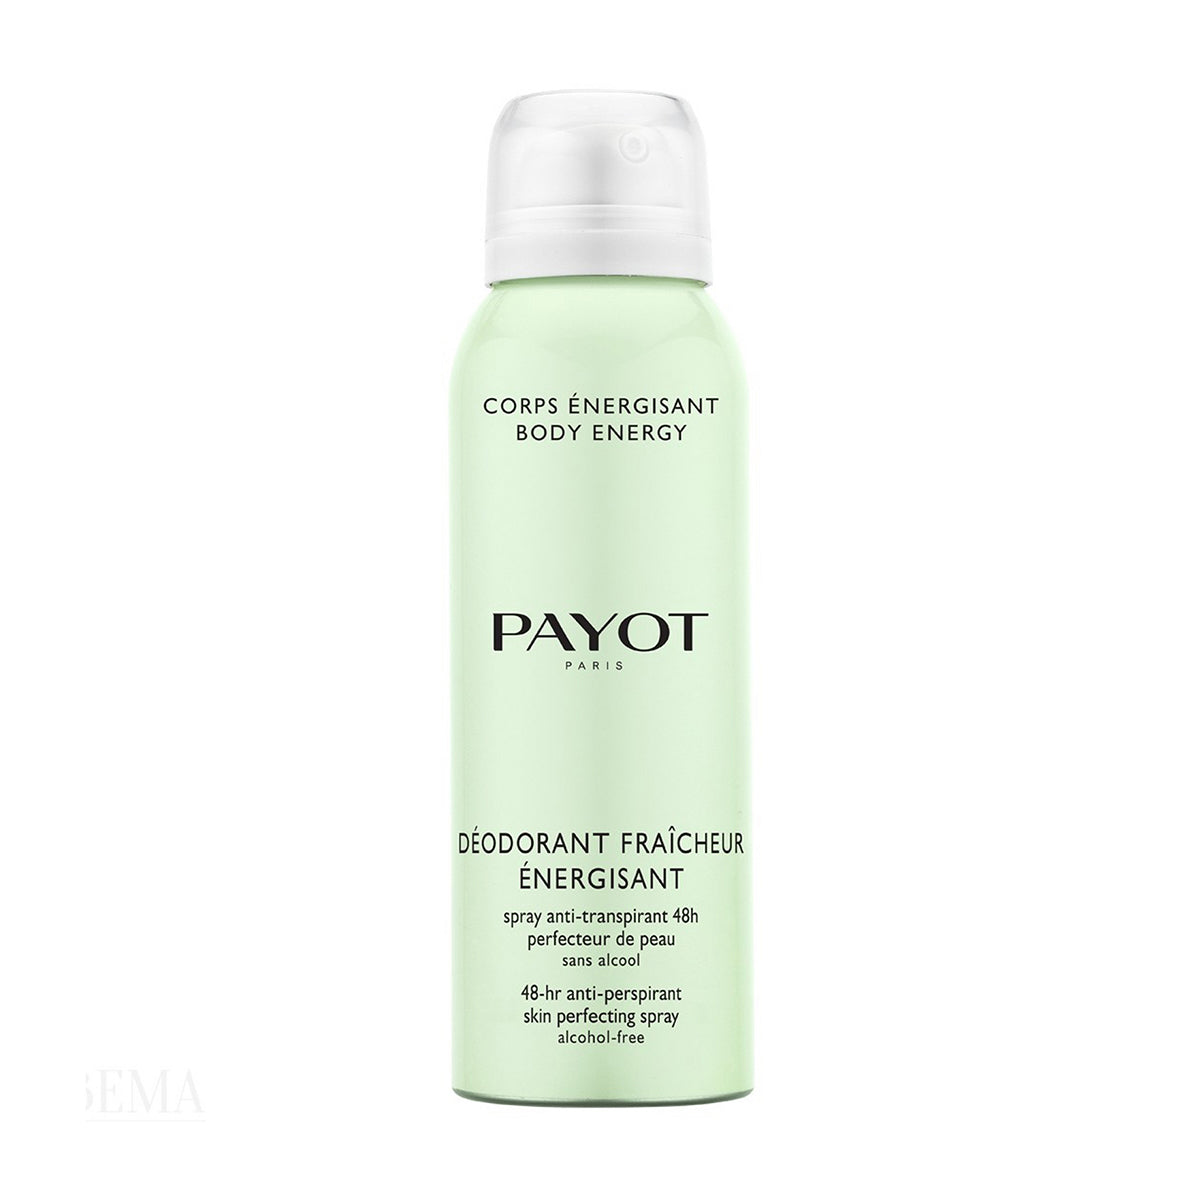 PAYOT 48-hr Anti-Perspirant Skin Perfecting Spray - Alcohol Free